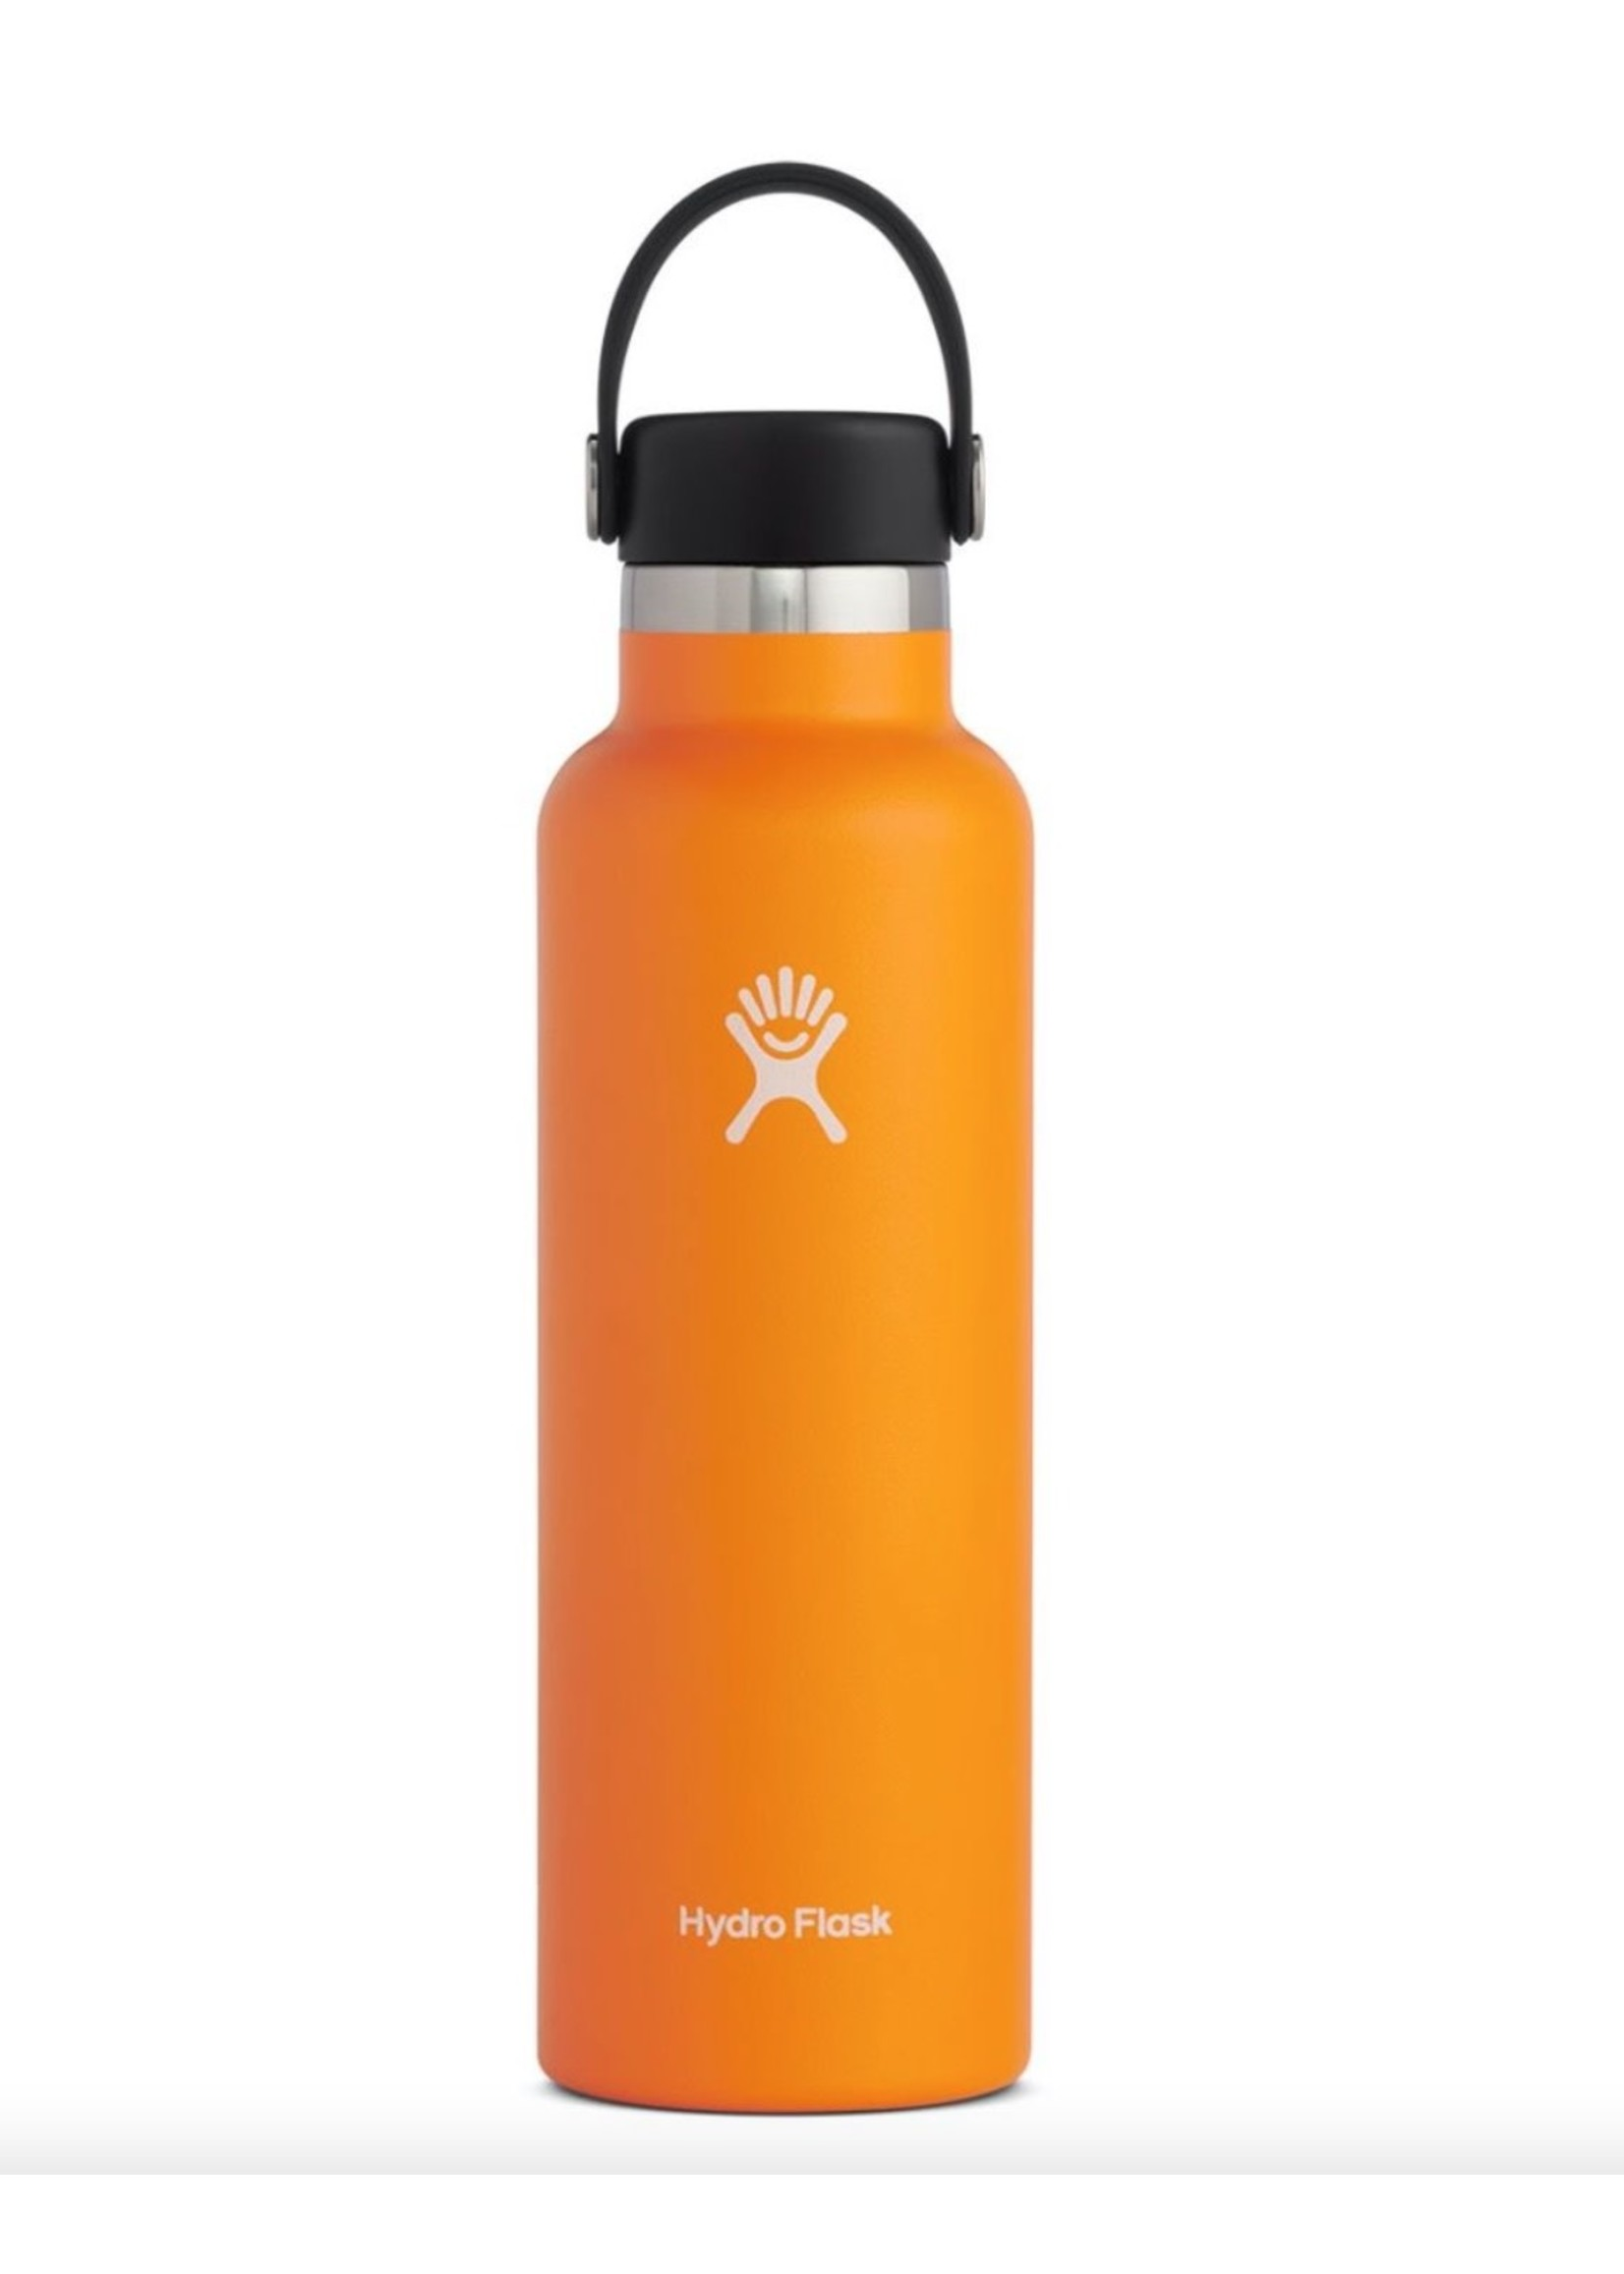 Hydro Flask Hydro Flask, 21 oz Standard Mouth Flex Cap Insulated Stainless Steel Bottle in Clementine